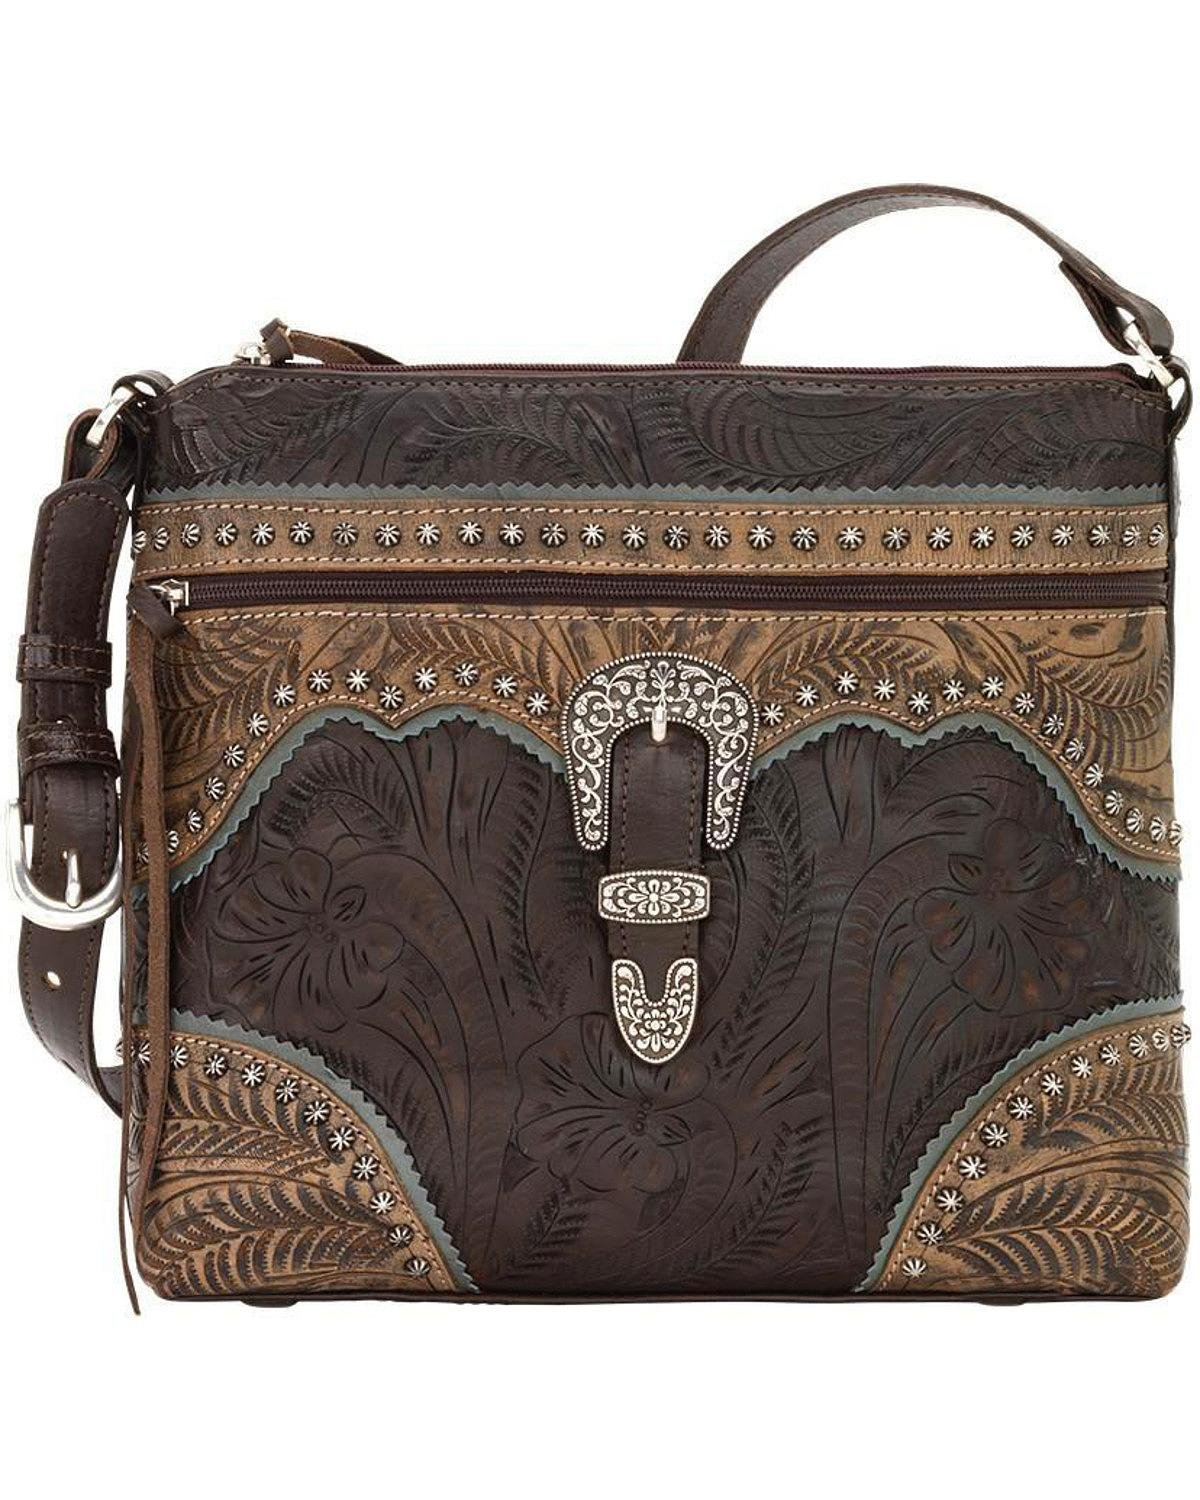 American West Women's Saddle Ridge Zip Top Shoulder Bag Chocolate One Size